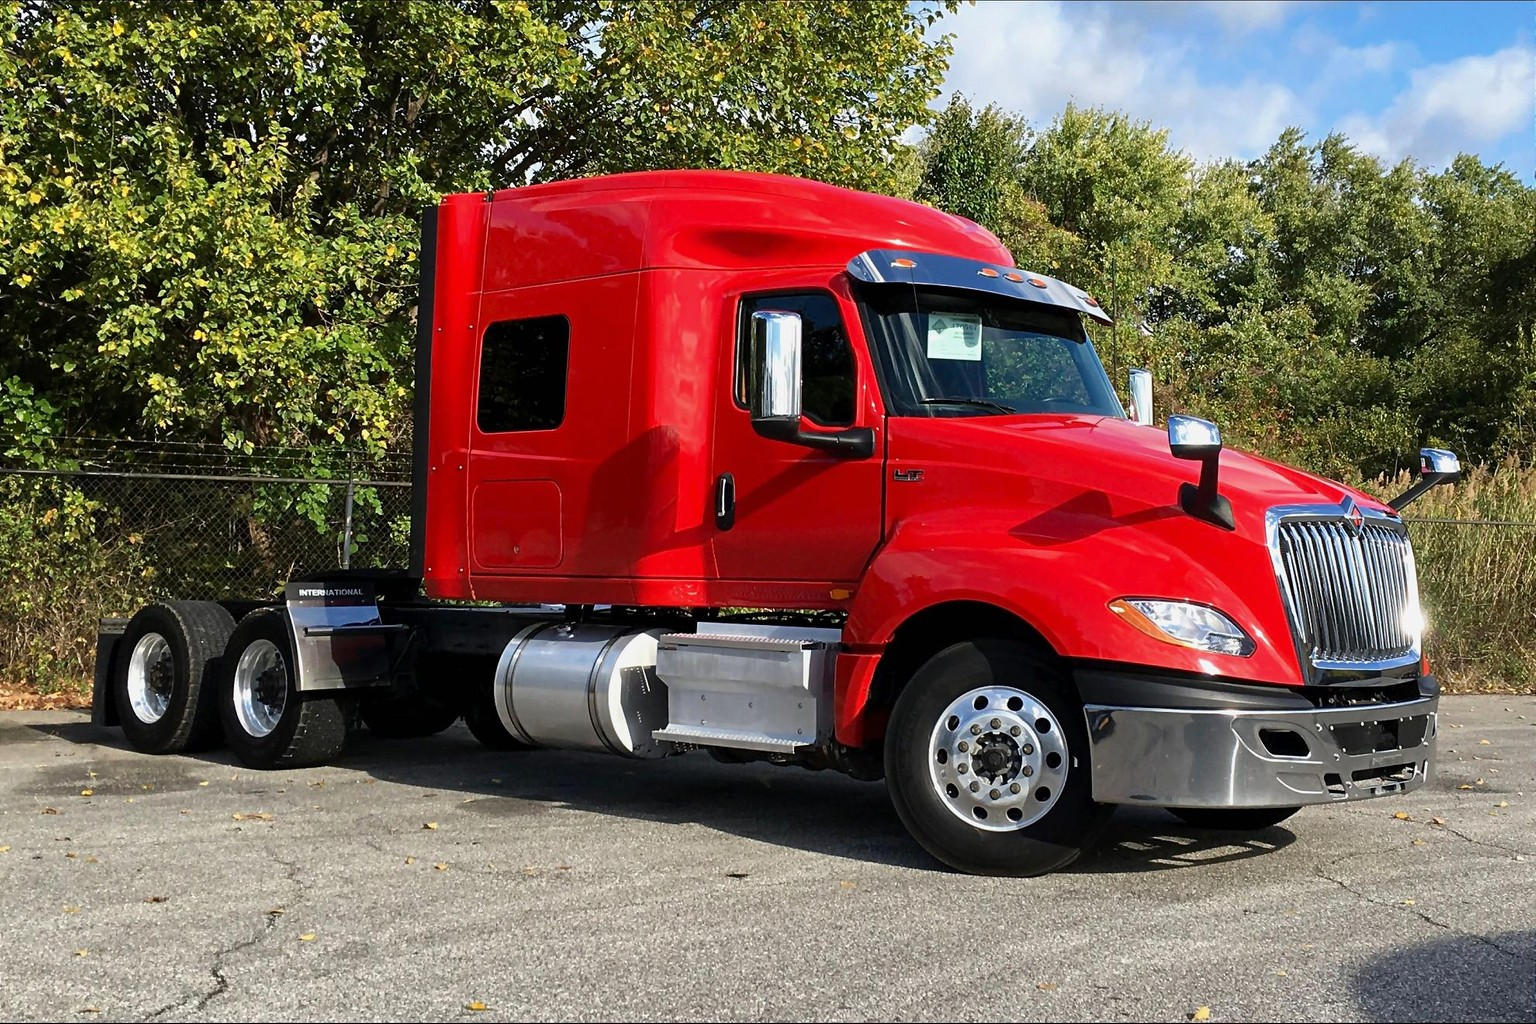 Certified Pre-Owned 2018 International LT625 6x4 Sleeper